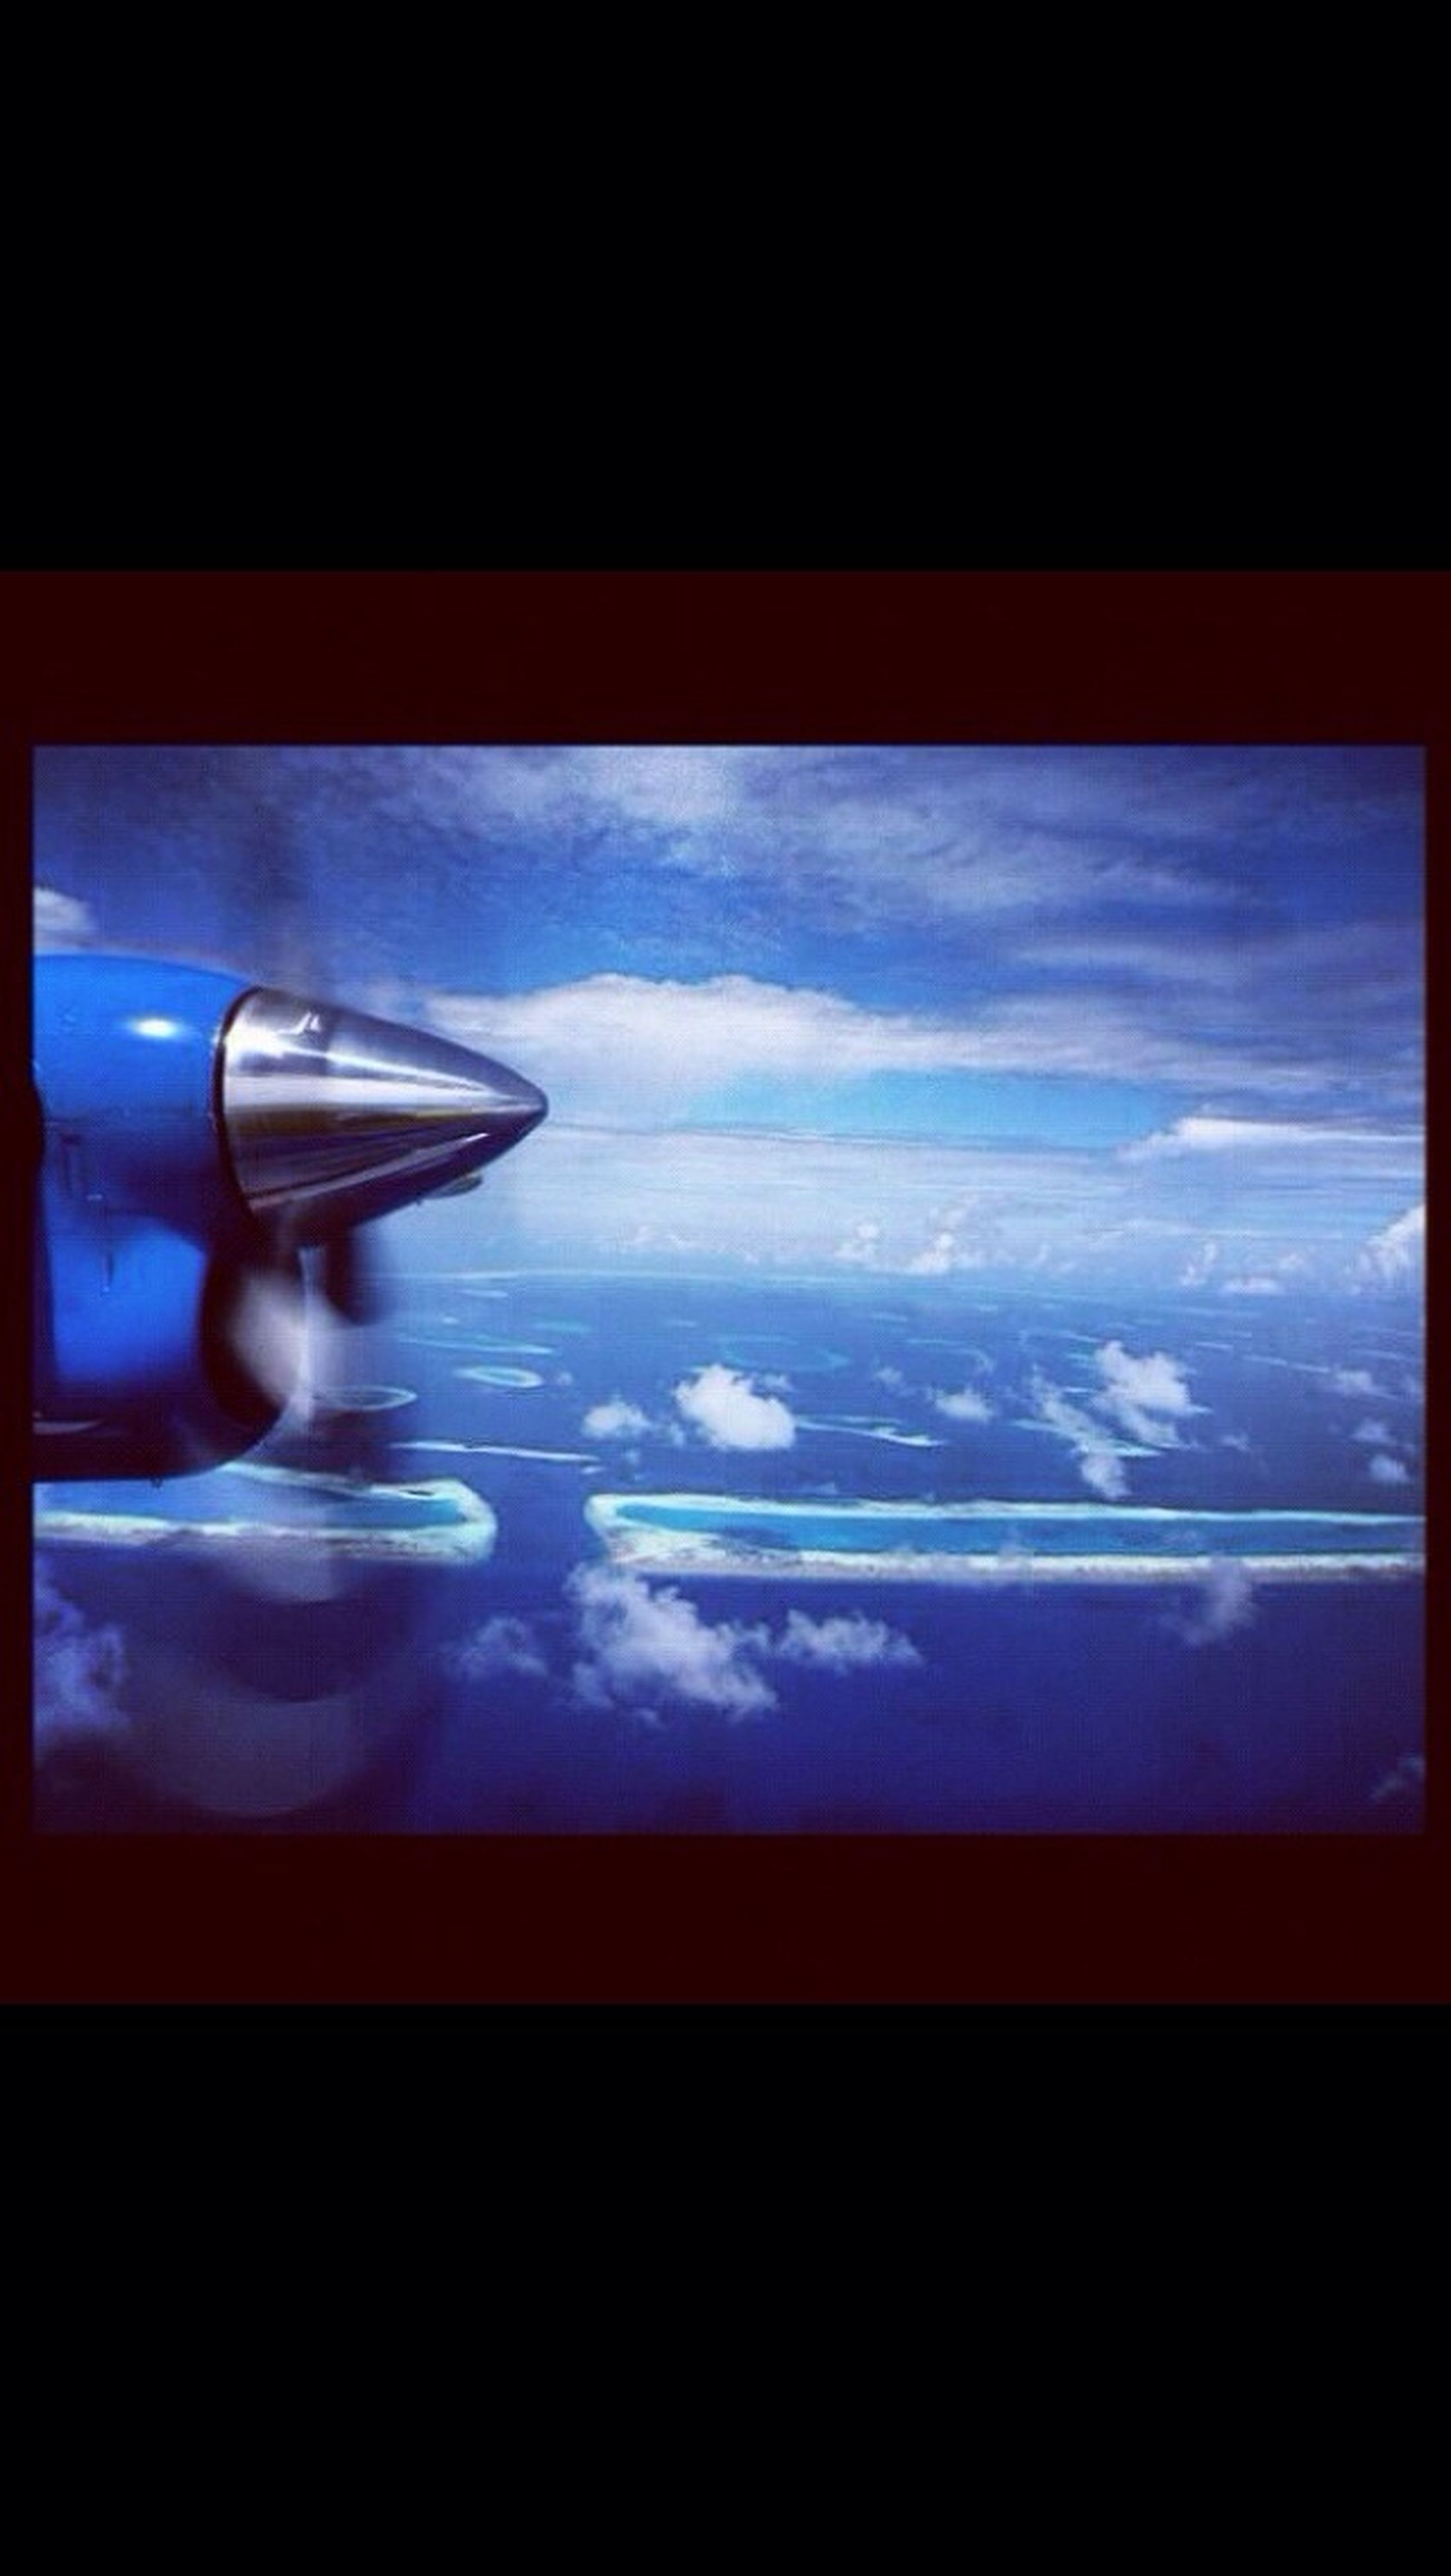 window, indoors, glass - material, transparent, sky, water, transportation, reflection, mode of transport, vehicle interior, looking through window, silhouette, cloud - sky, sea, glass, airplane, auto post production filter, blue, cloud, nature